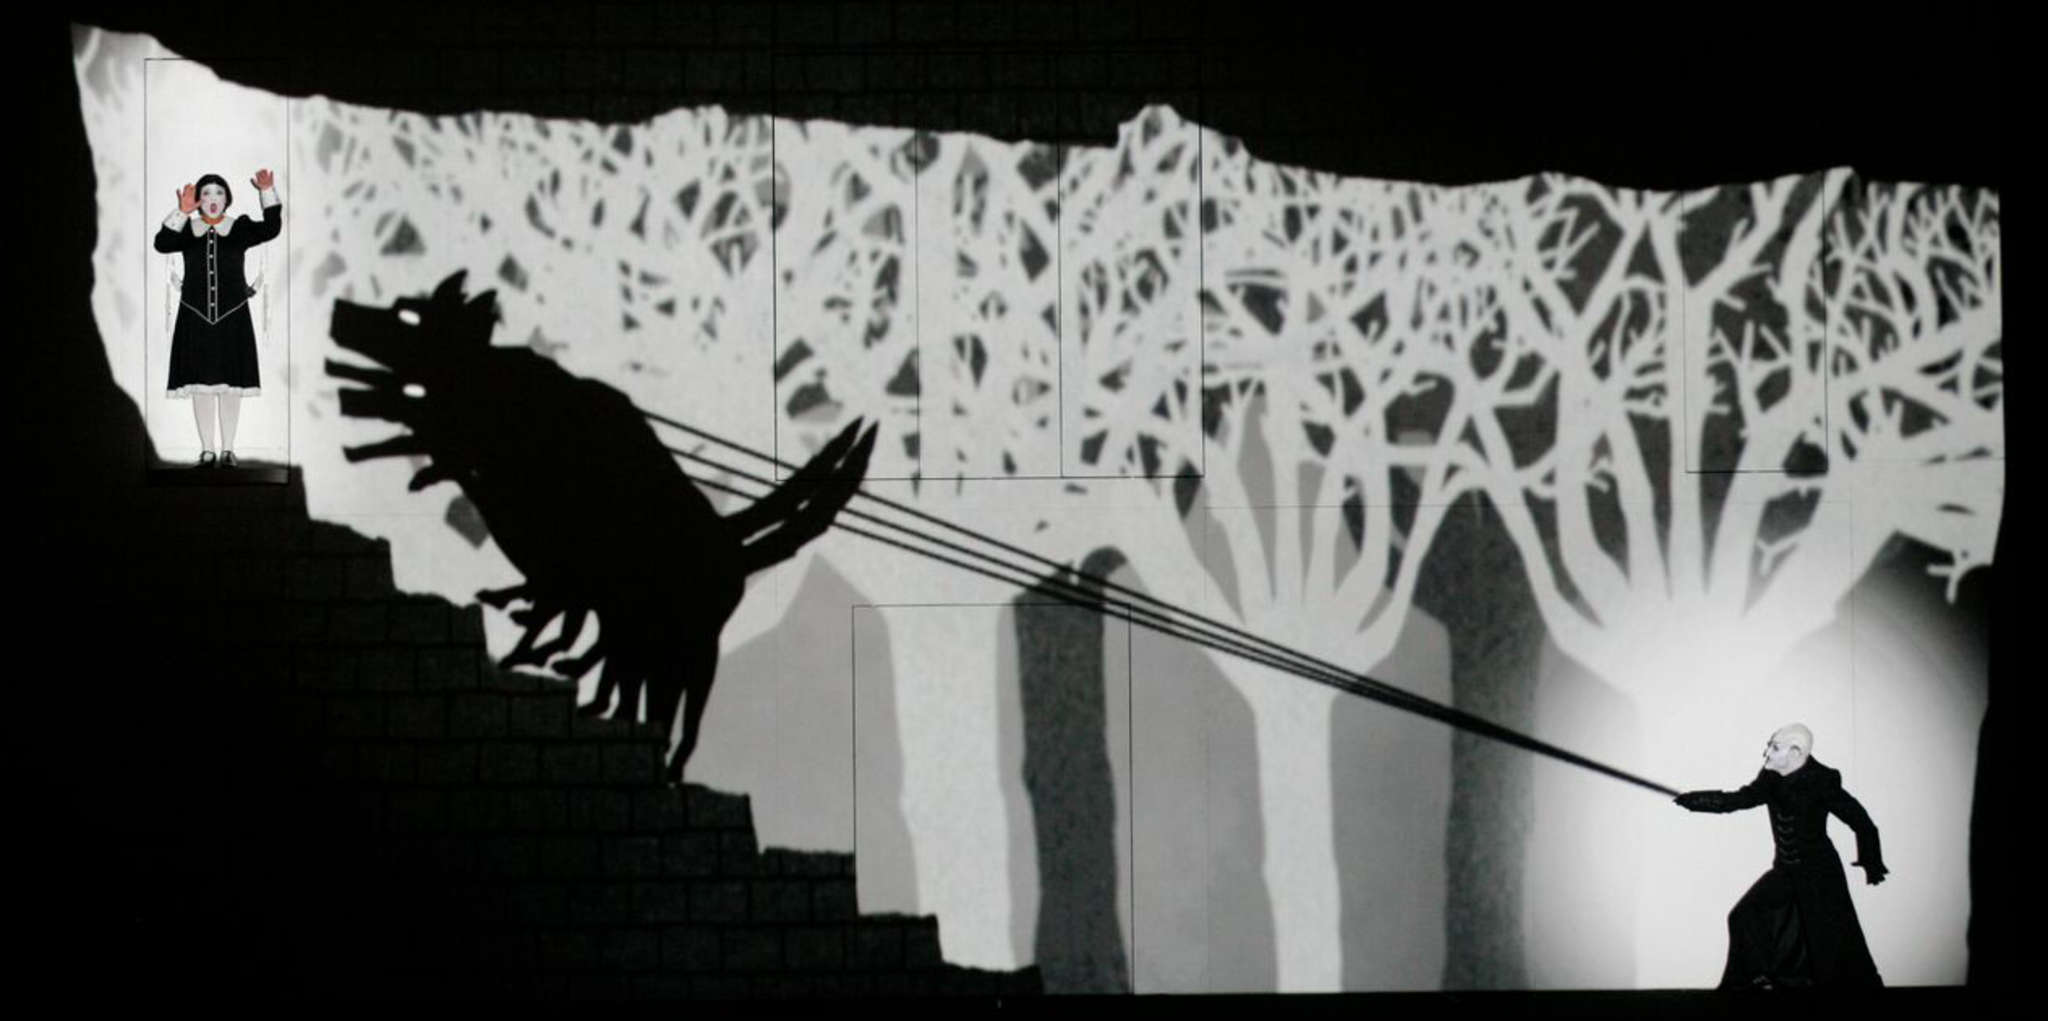 """""""The Magic Flute,"""" Barrie Kosky´s production with Komische Oper Berlin in L.A. in 2013, will be mounted as part of Opera Philadelphia´s first festival in 2017."""